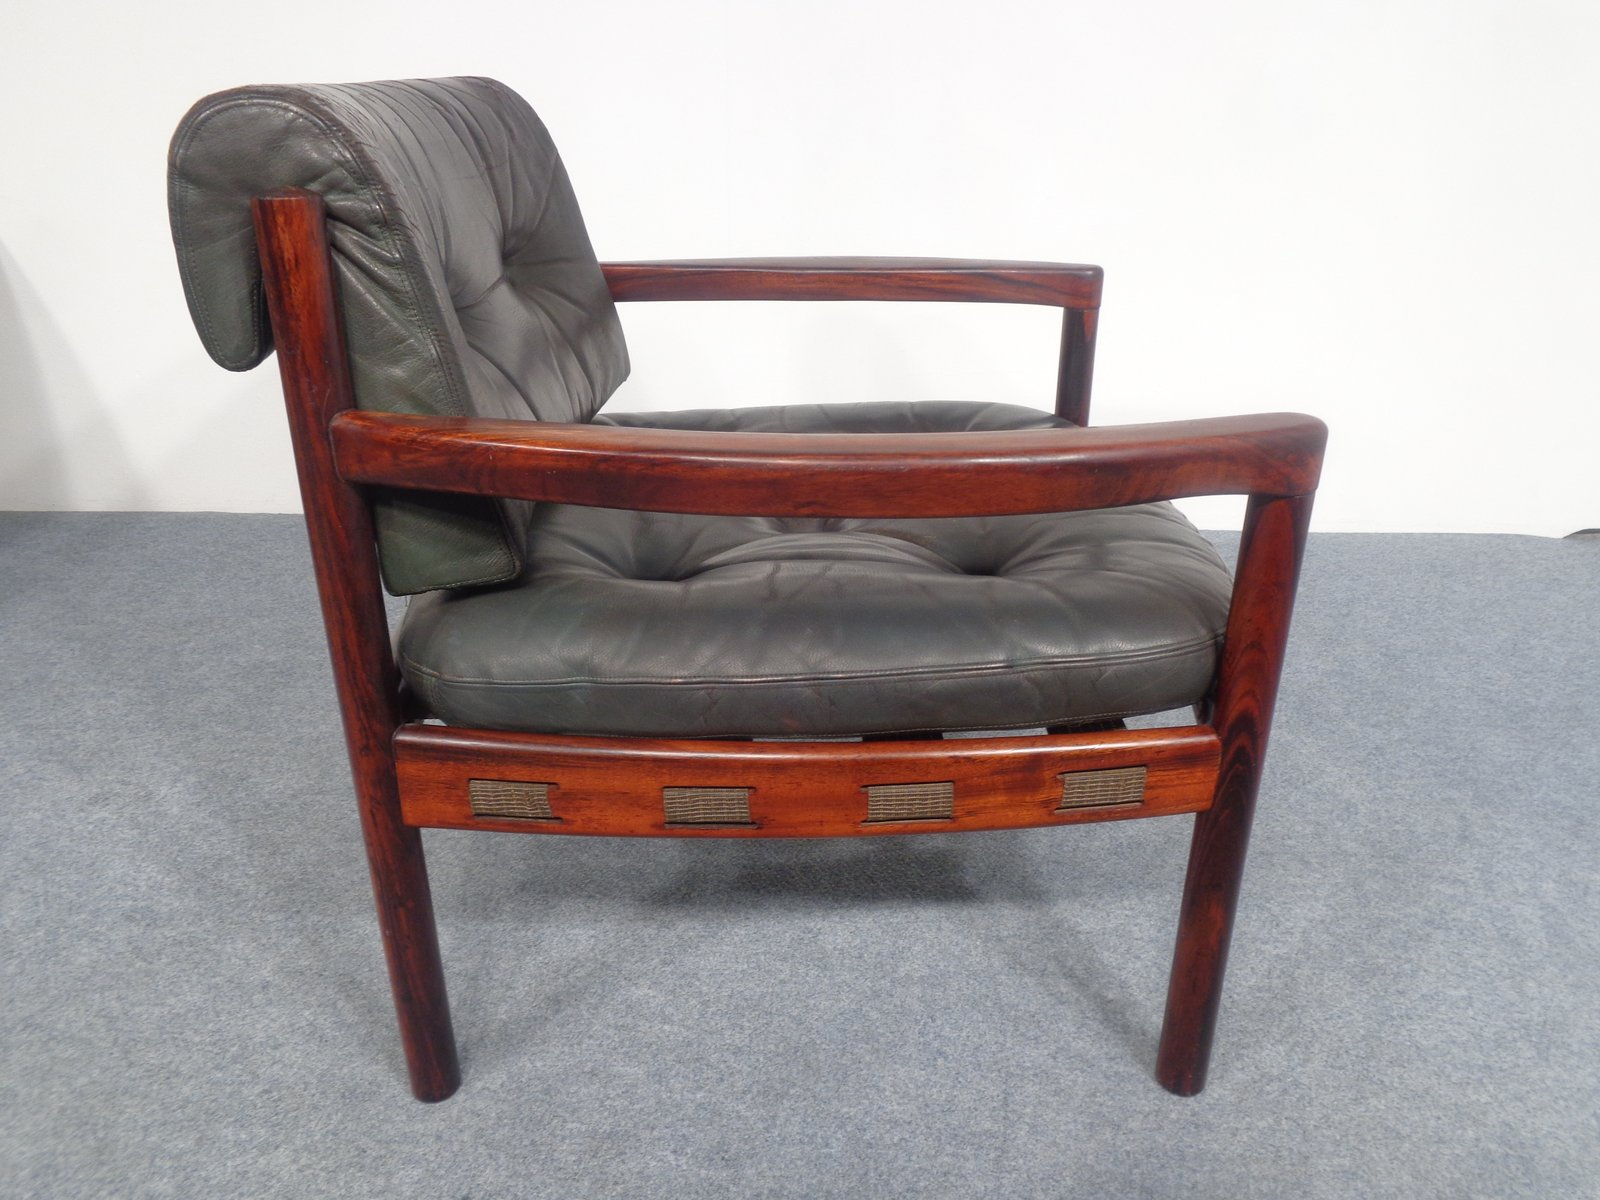 midcentury swedish rosewood and black leather armchair by arne norell 1960s